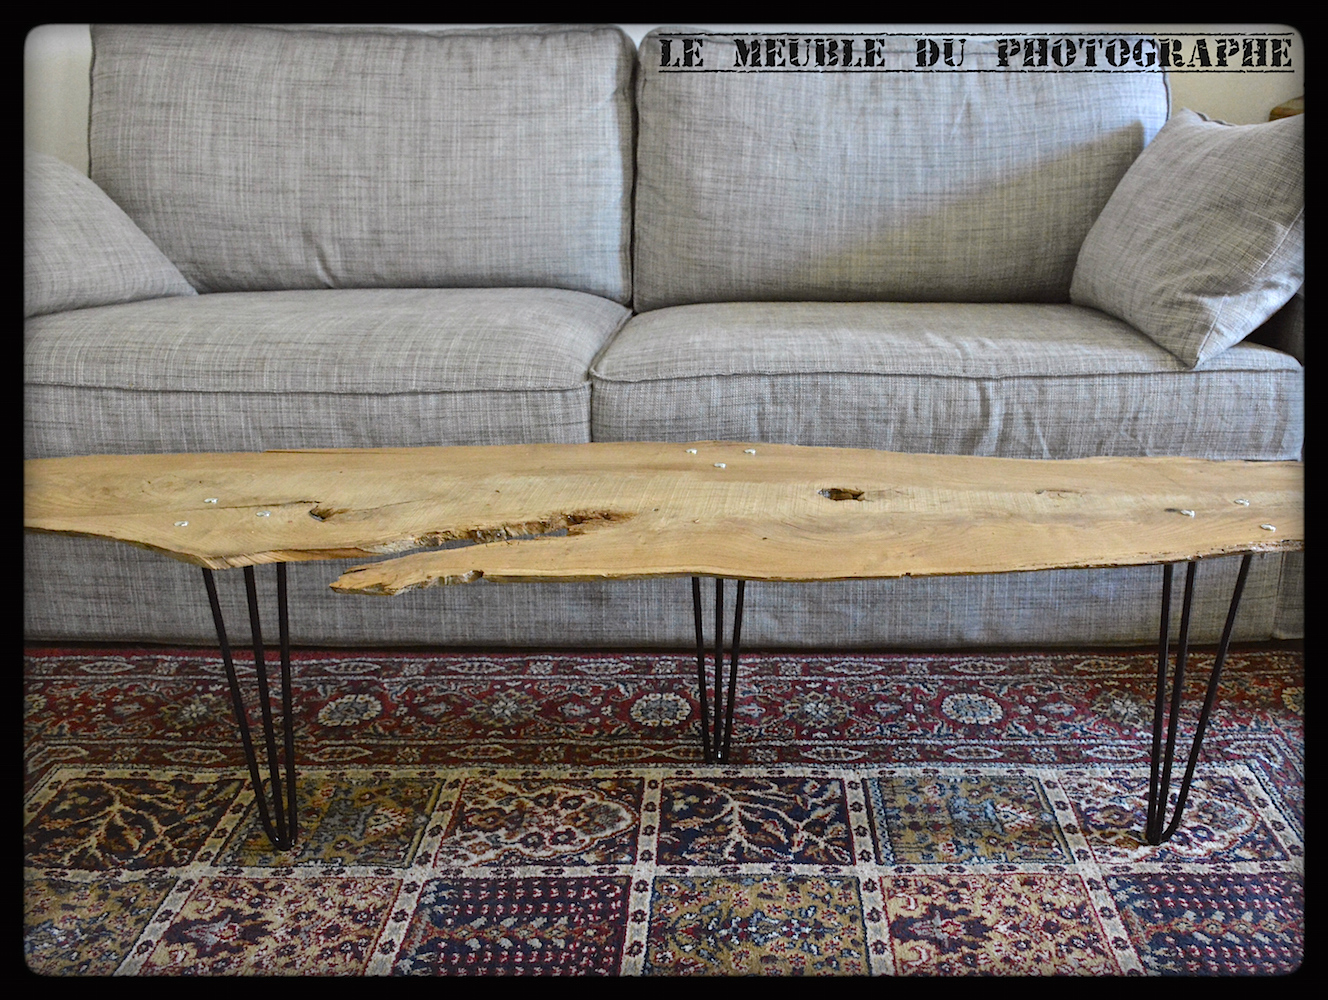 Planche d 39 arbre sur hairpin legs le meuble du photographe for Le meuble du photographe